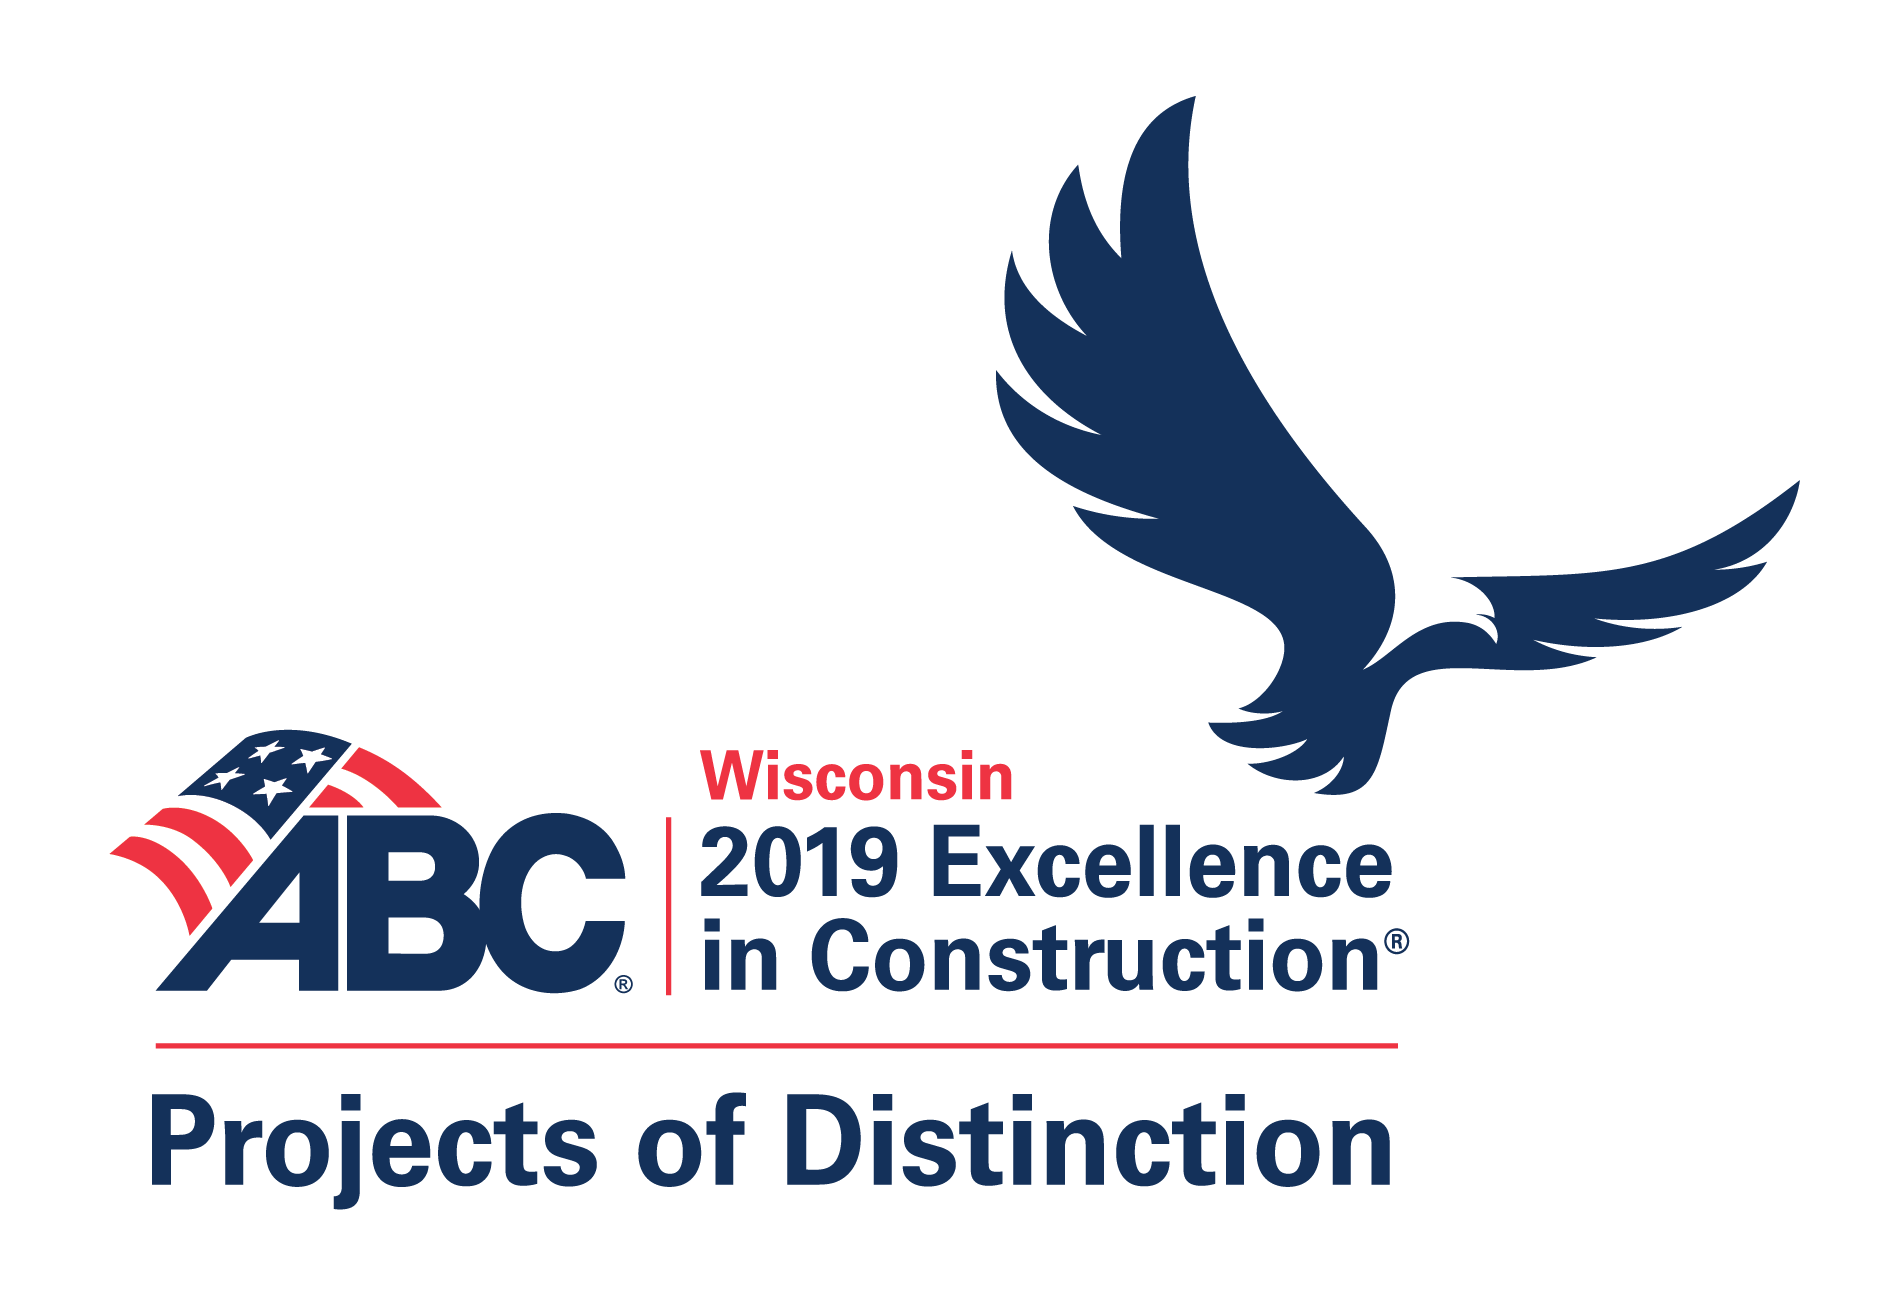 ABC of Wisconsin members recognized for excellence in construction